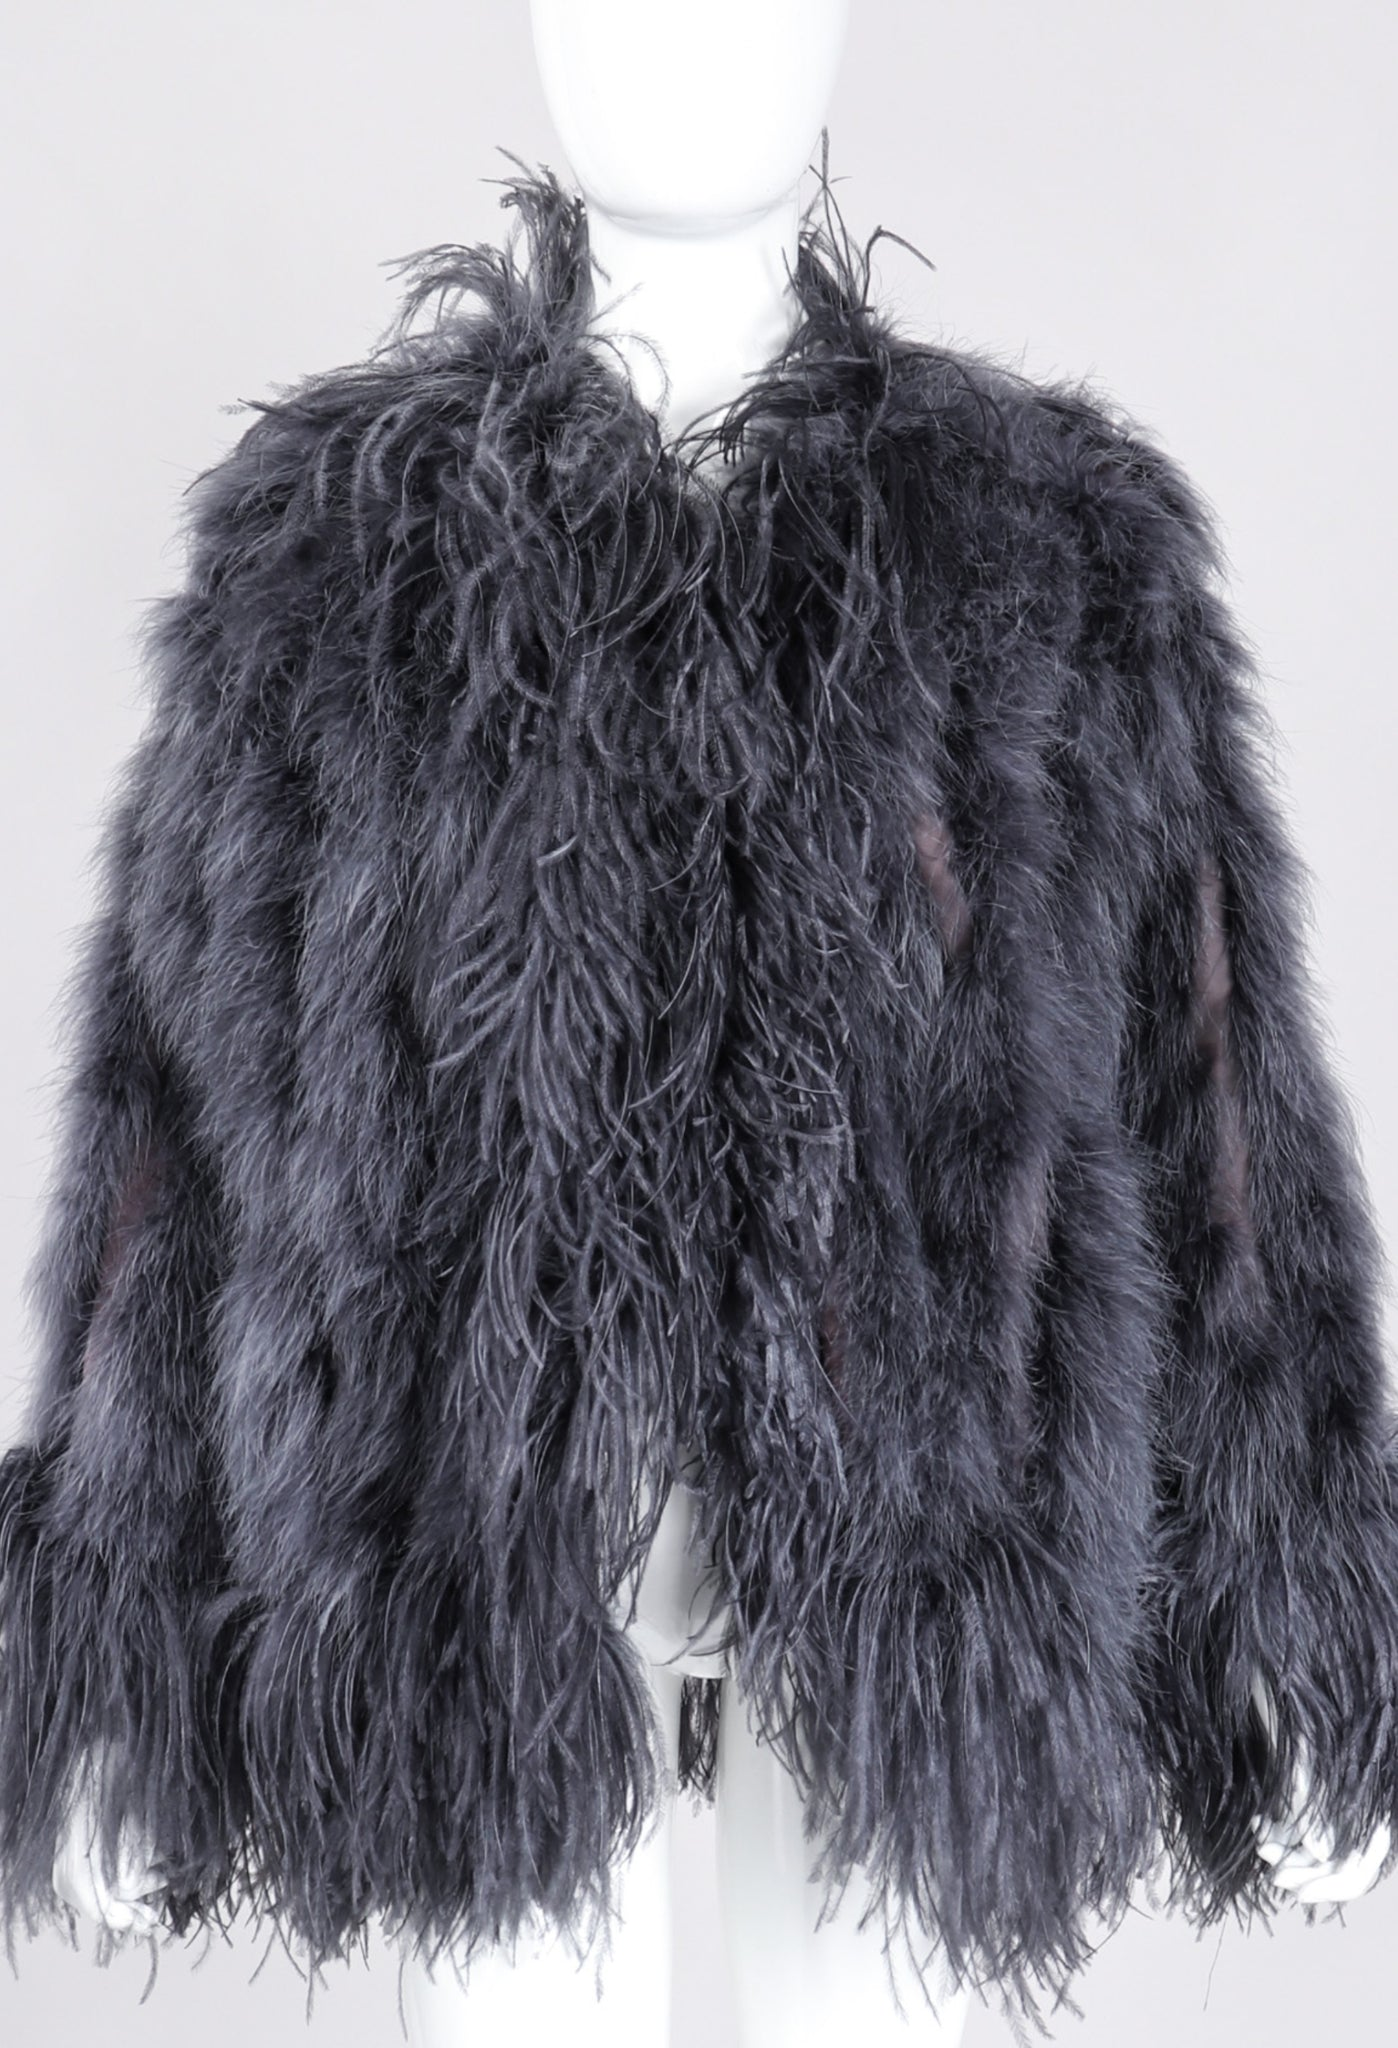 b14f8dc03d1 Dress Code Recess Los Angeles Yves Saint Laurent YSL Shock Liberation  Scandal Collection Feather Marabou Jacket